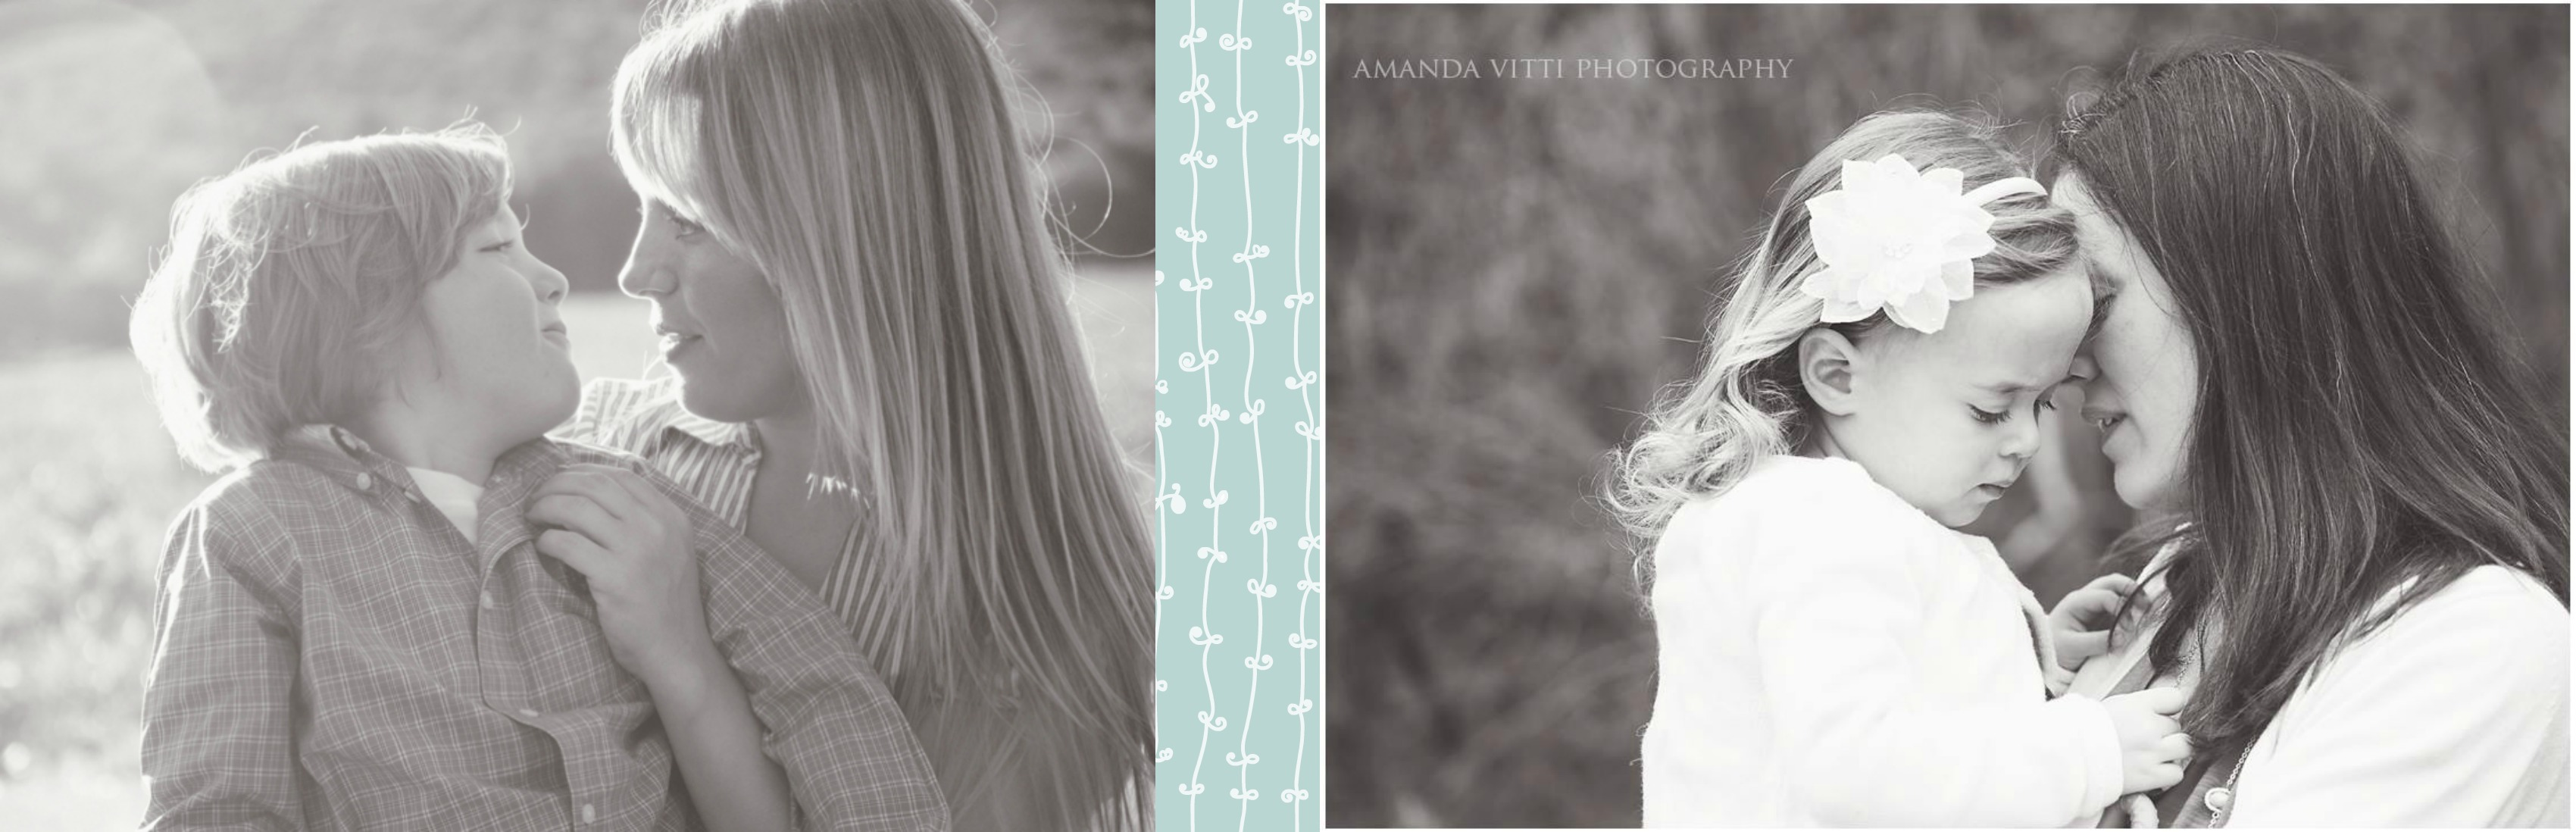 Amanda Vitti Photography